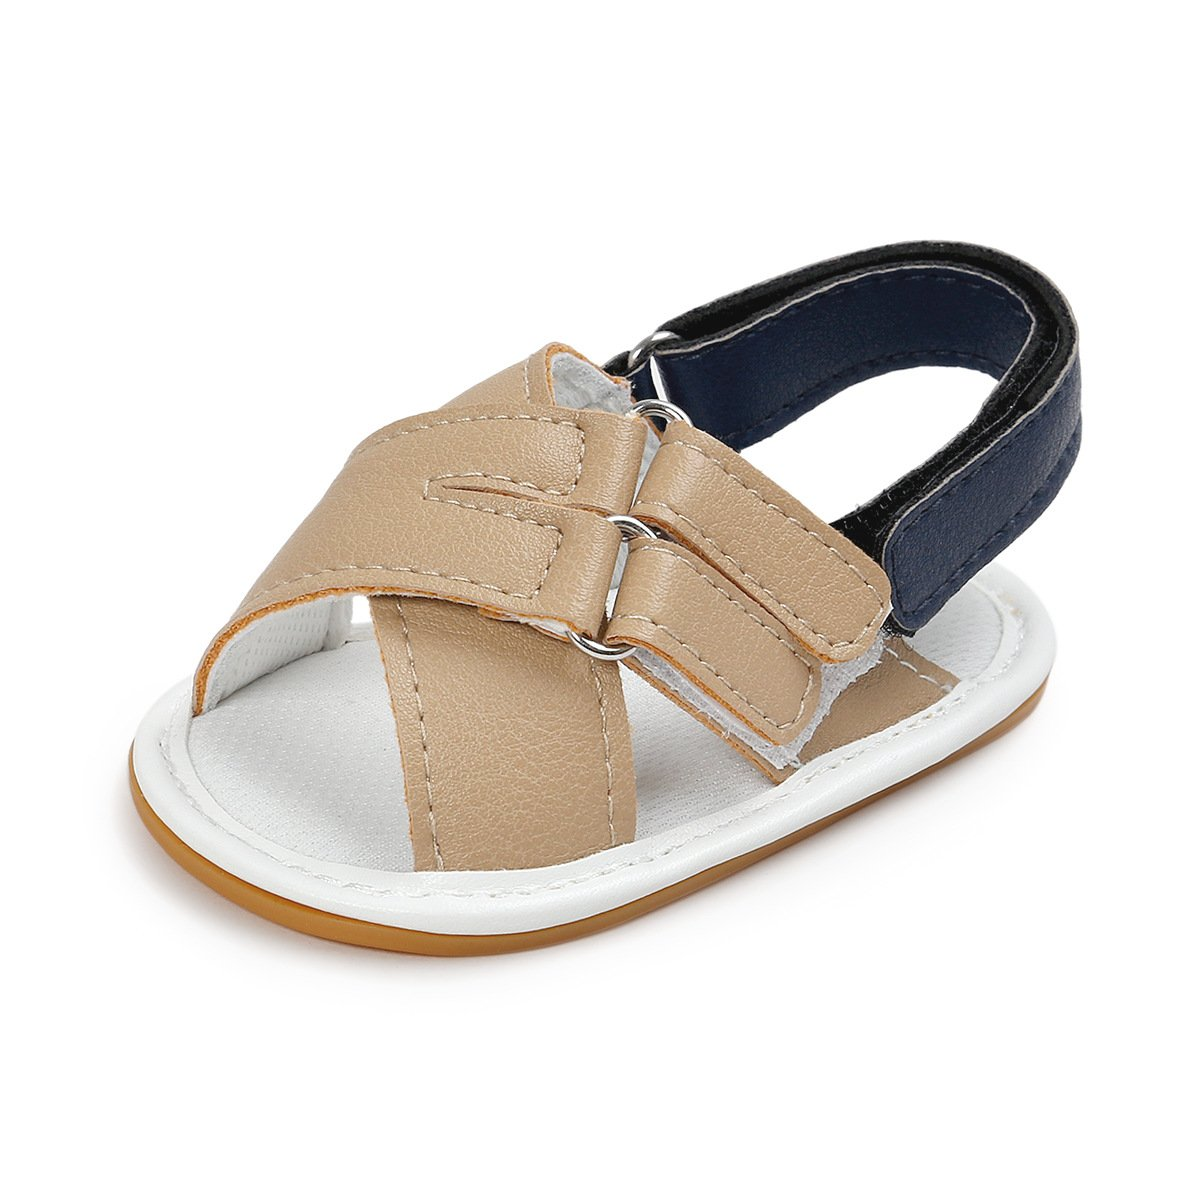 QGAKAGO Baby Girls Boys PU Leather Open Toe Rubber Sole Infant Toddler Summer Sandals Shoes FQ-6X5Y-37ZS